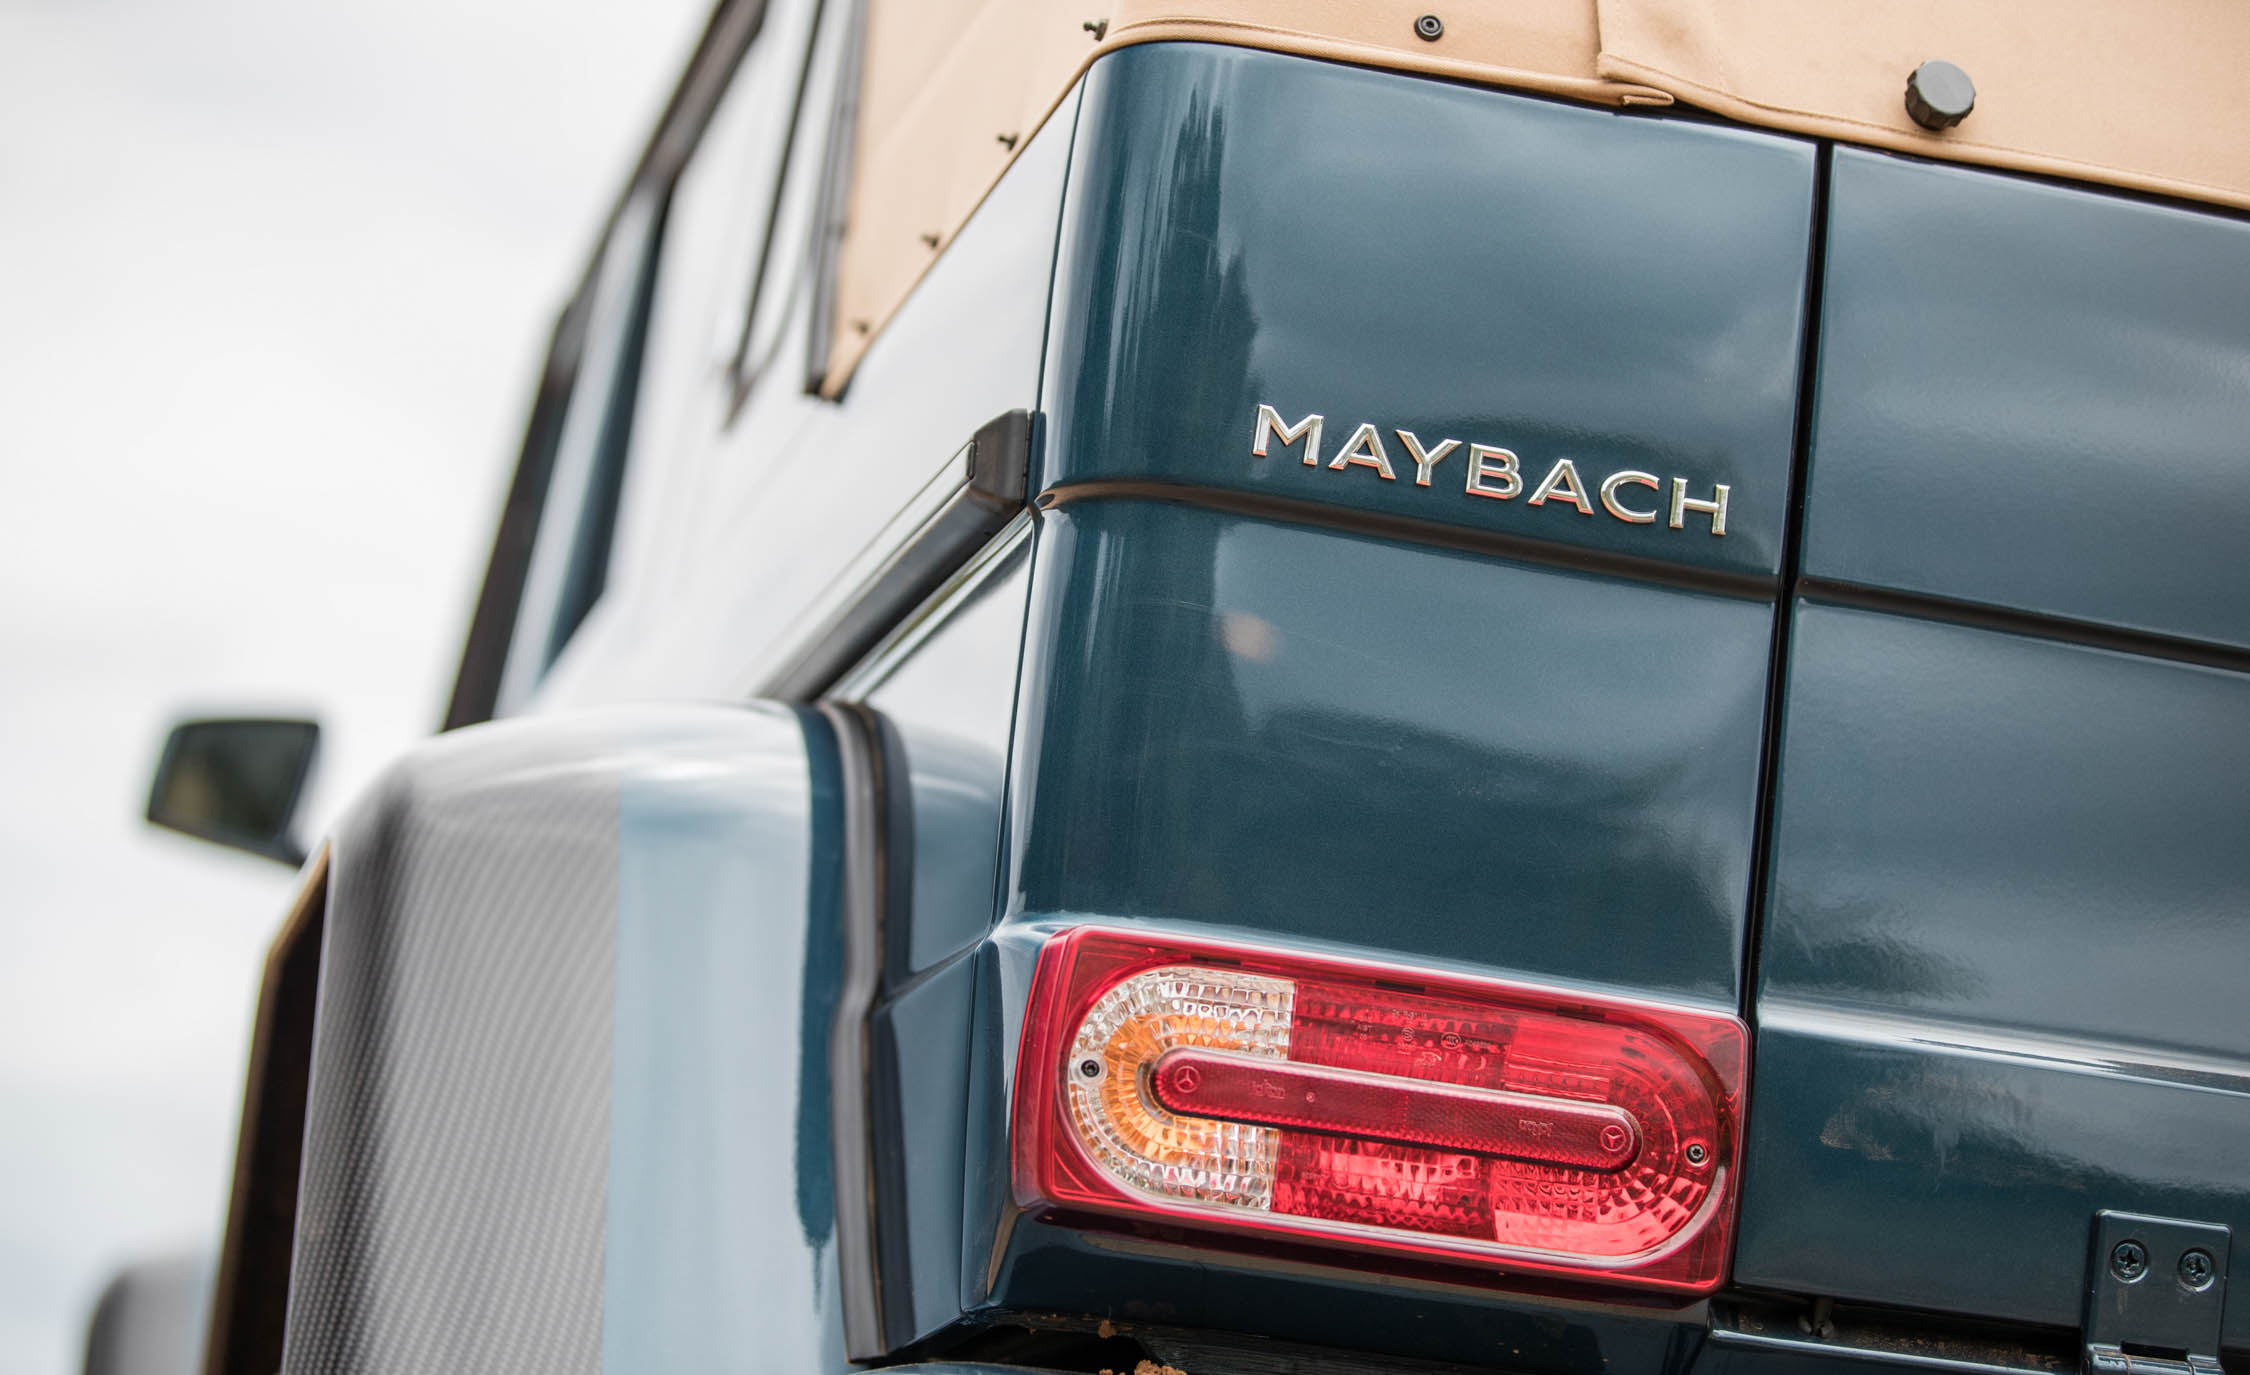 2018 Mercedes Maybach G650 Landaulet Exterior View Taillight (View 43 of 52)